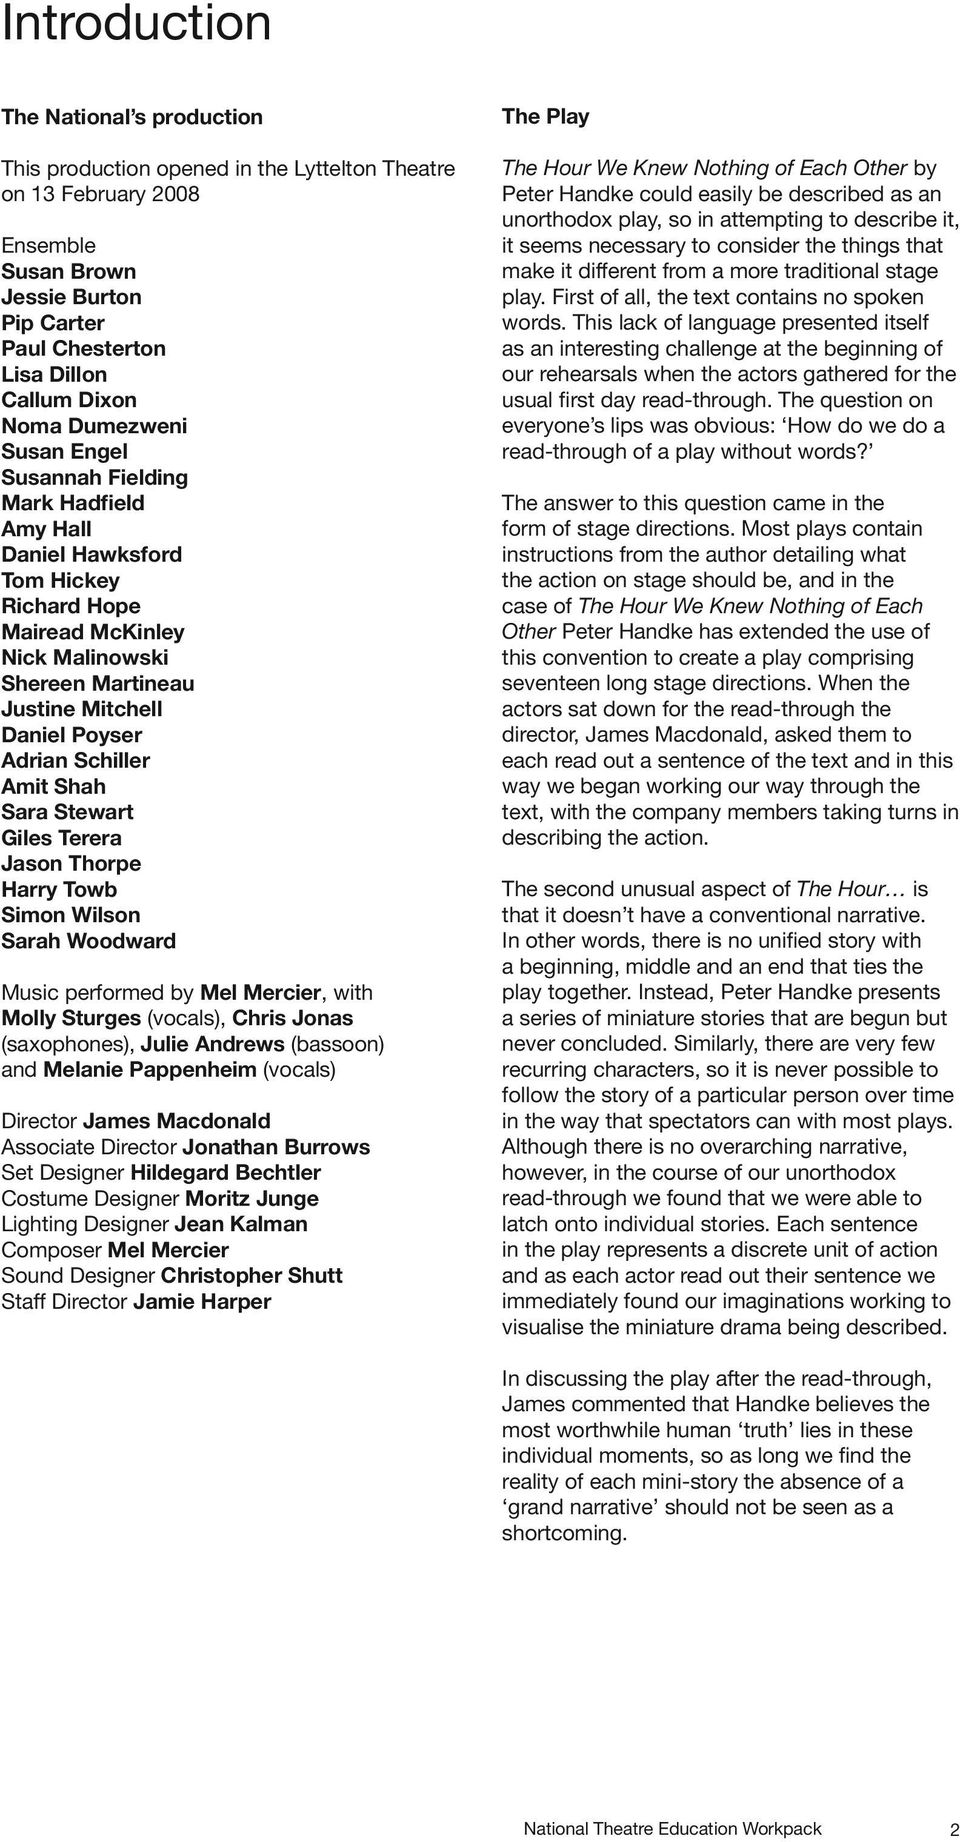 Schiller Amit Shah Sara Stewart Giles Terera Jason Thorpe Harry Towb Simon Wilson Sarah Woodward Music performed by Mel Mercier, with Molly Sturges (vocals), Chris Jonas (saxophones), Julie Andrews